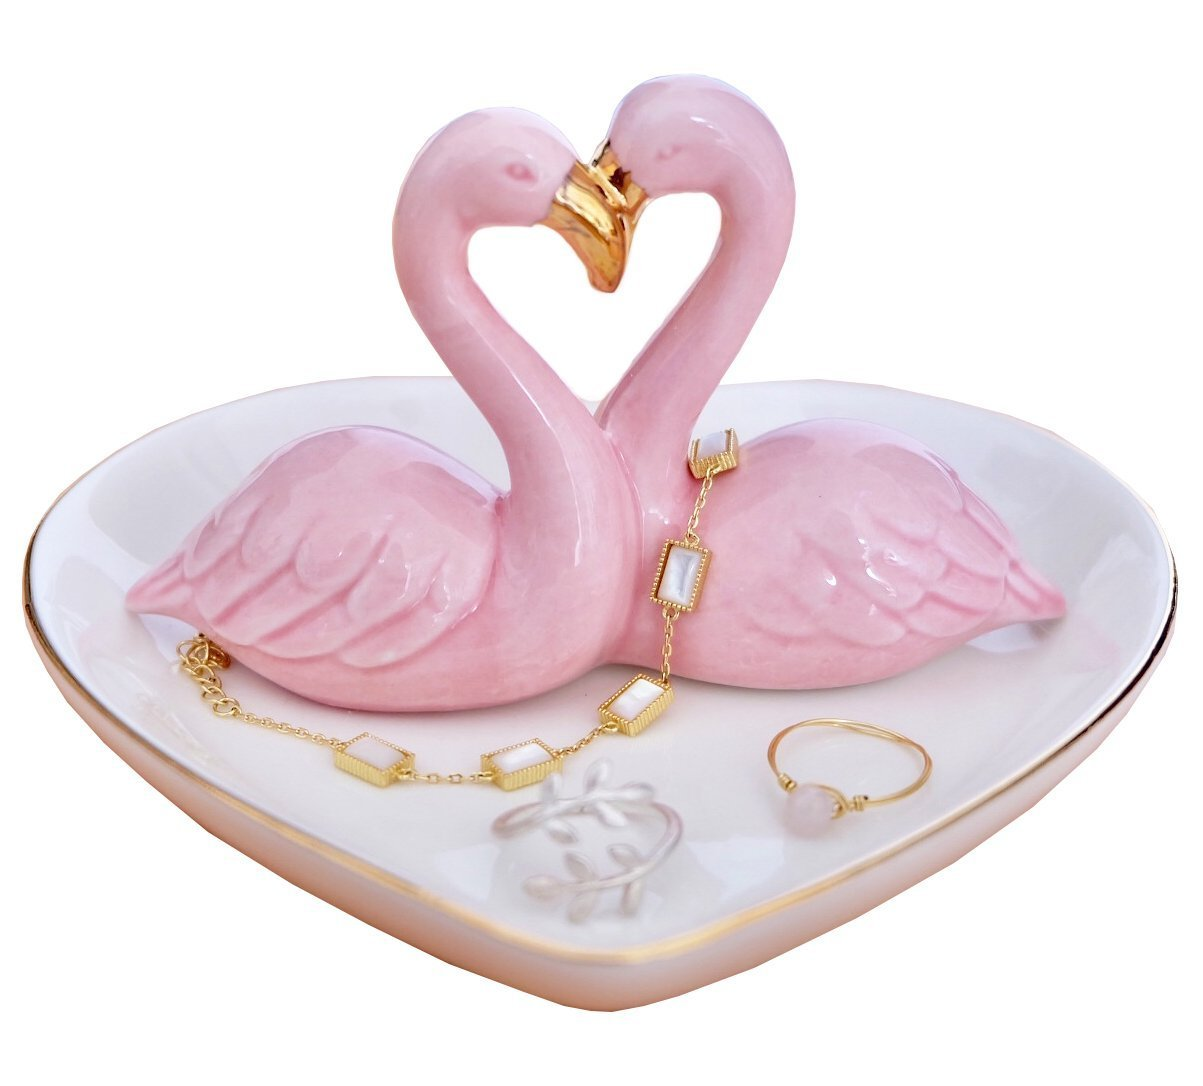 PUDDING CABIN Flamingo Ring Holder Heart Dish Wedding Gift